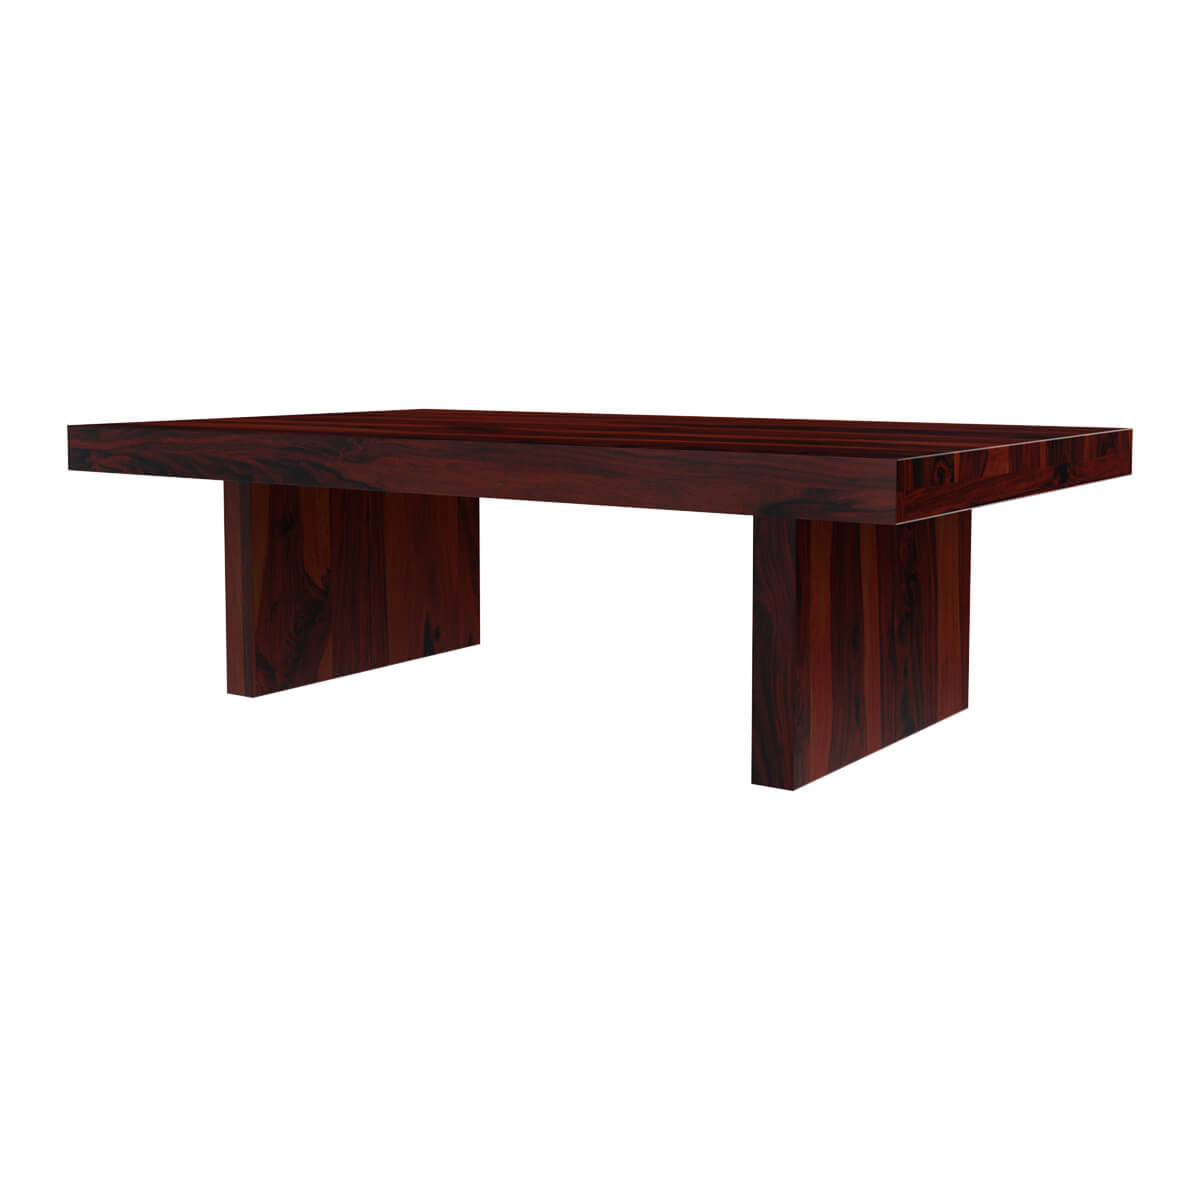 Solid Wood Block Coffee Table: Jayton Contemporary Rustic Solid Wood Cocktail Coffee Table